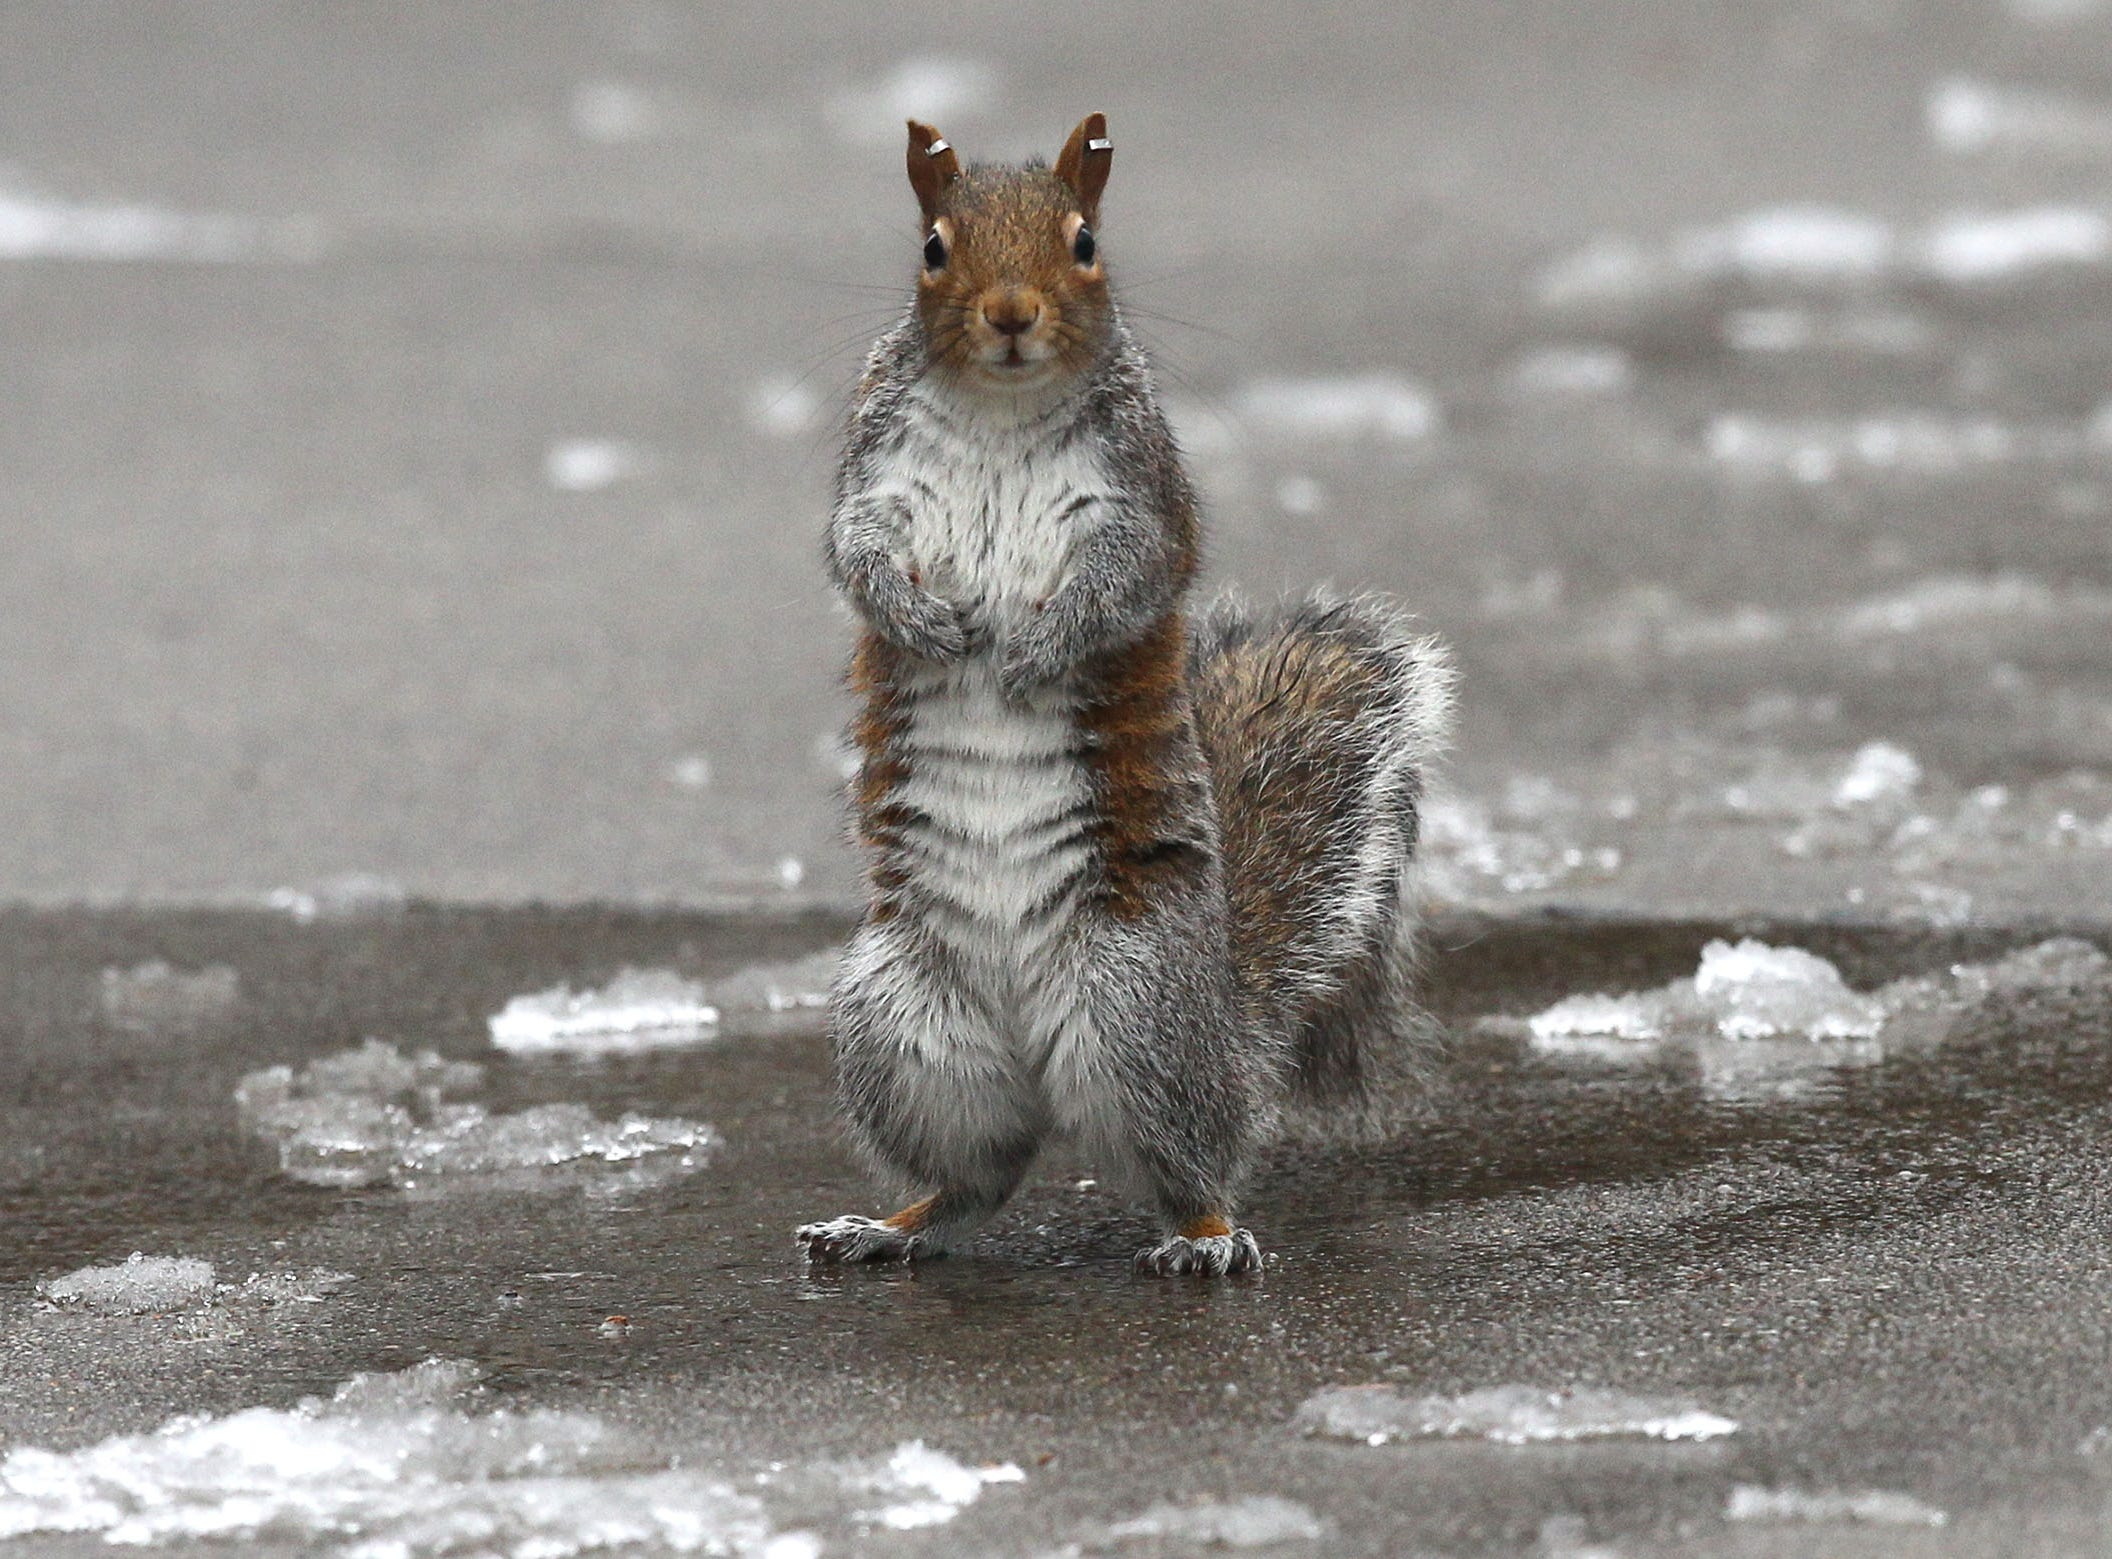 A squirrel with tags in the ears stands up near melting snow at Clemson University in 2015.